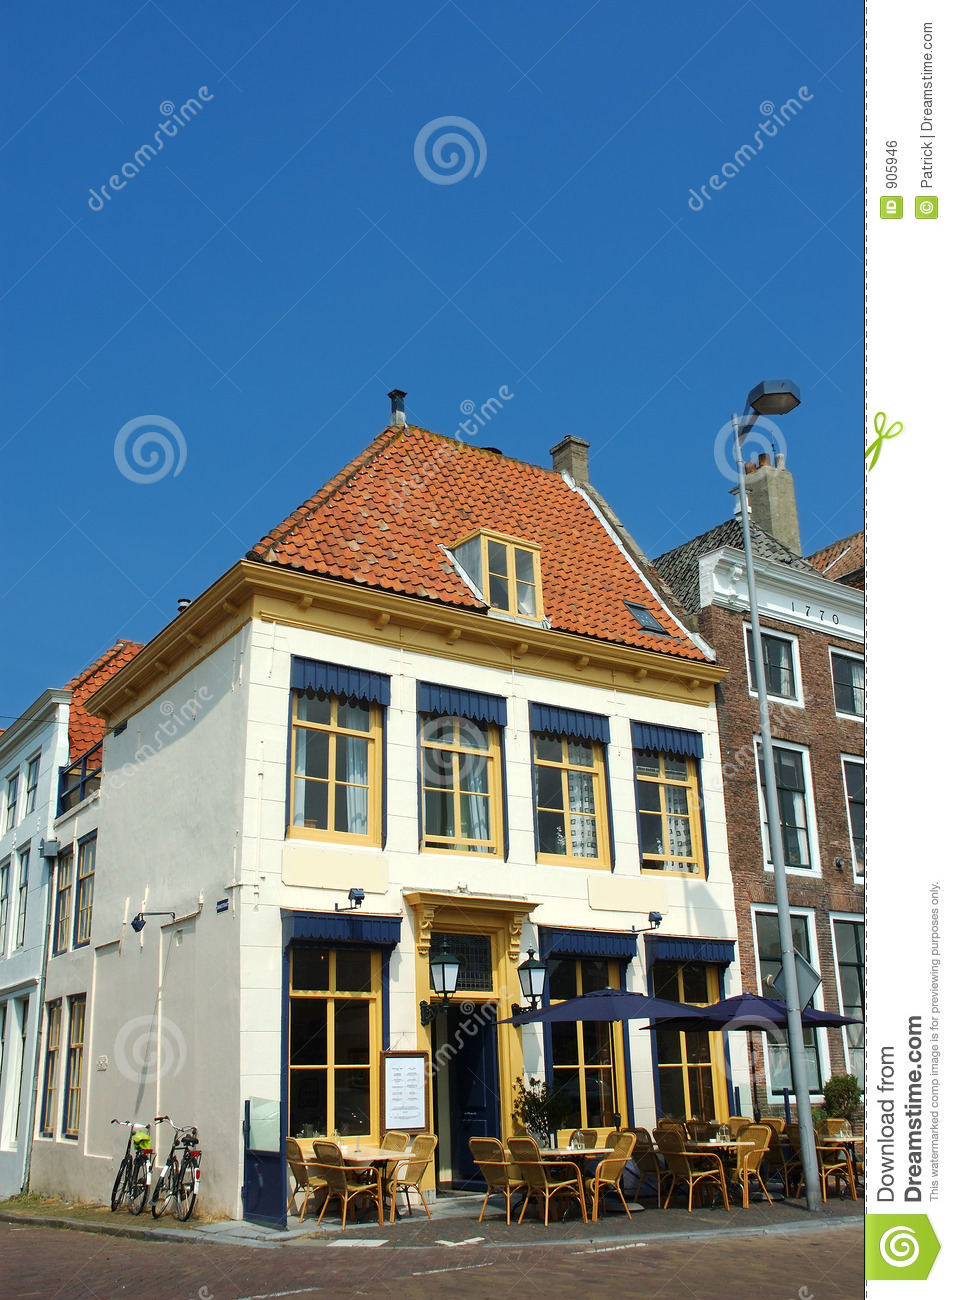 Cafe restaurant with terrace royalty free stock image for Restaurant with terrace